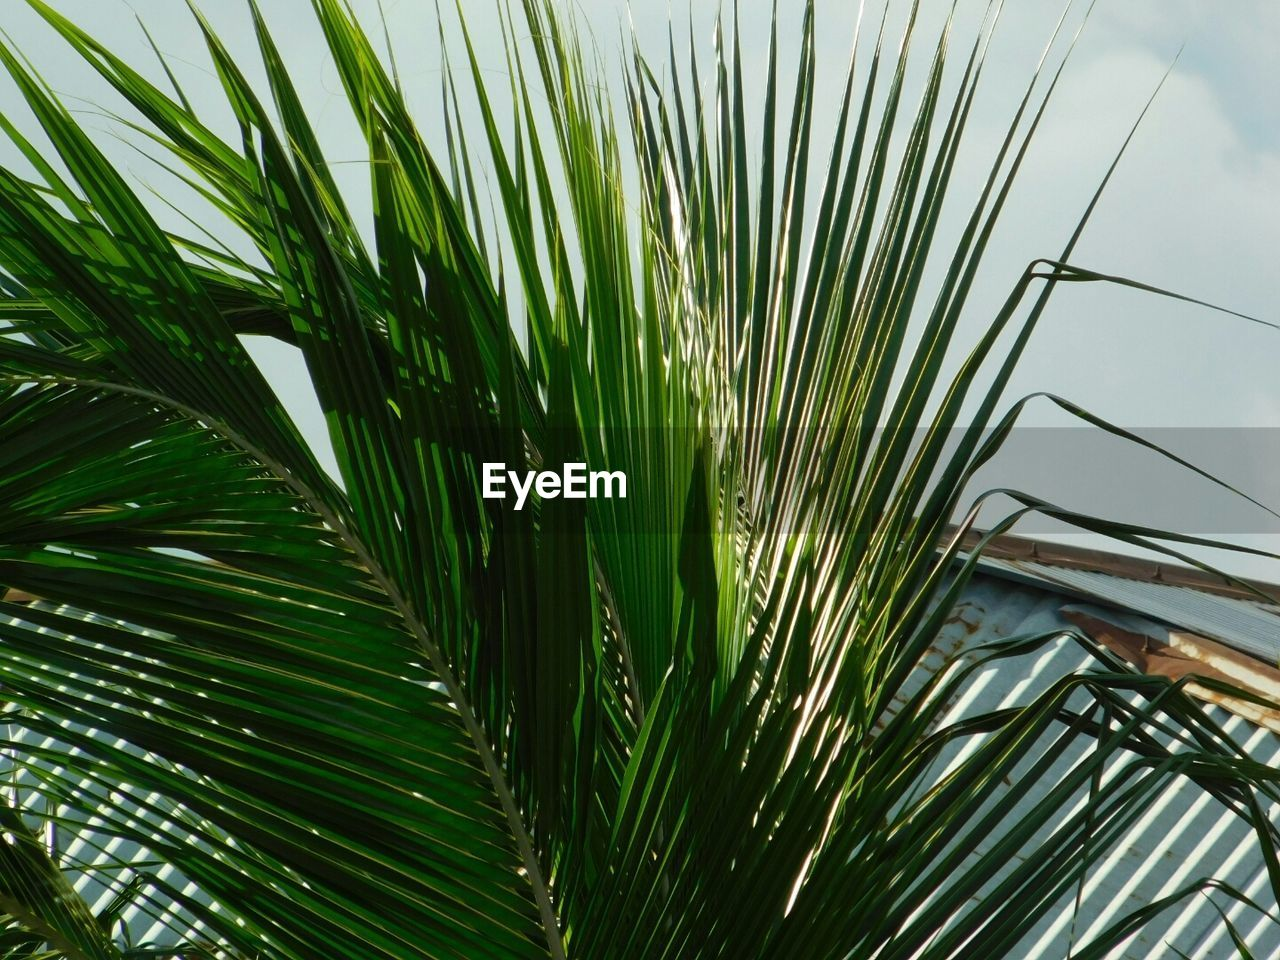 growth, green color, outdoors, day, plant, nature, no people, sky, close-up, palm tree, beauty in nature